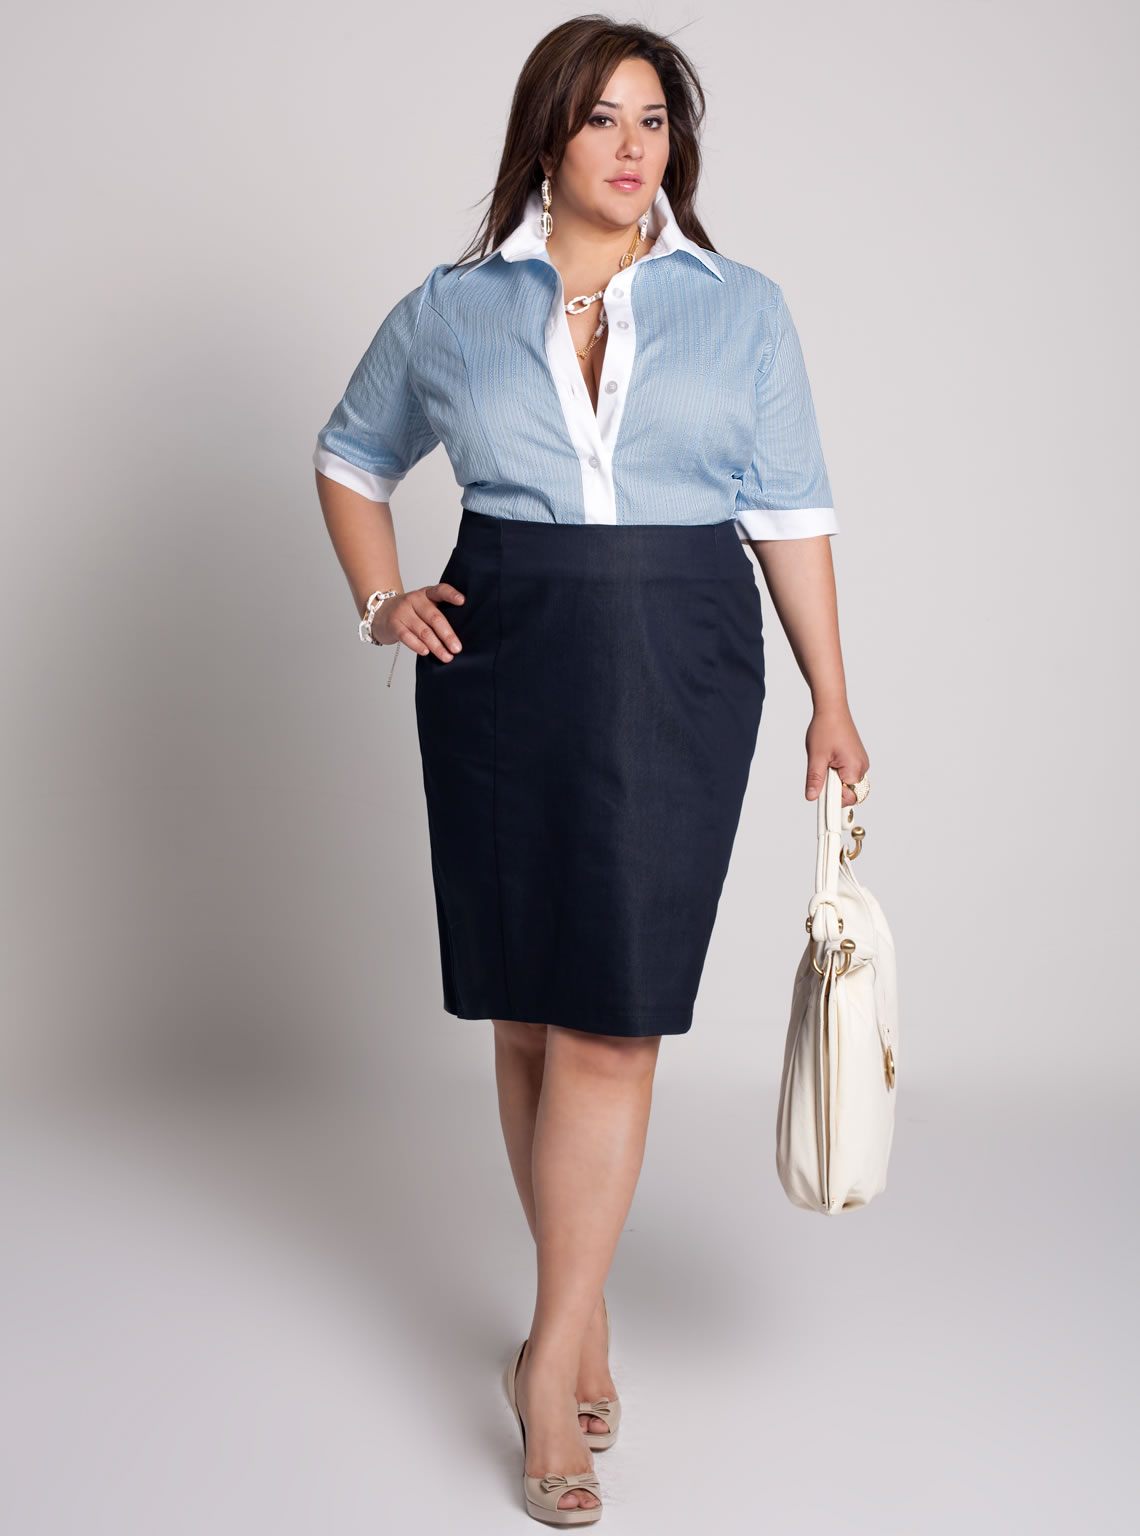 Plus Size Clothing for Women Sized 16 to Your best loved plus size online clothing brand, shop sizes Yours believe that all women should look awesome, regardless of their dress inerloadsr5s.gqUS LADIES CURVE FASHION DOES NOT END AT A SIZE 16, AND WE'RE THE PROOF.